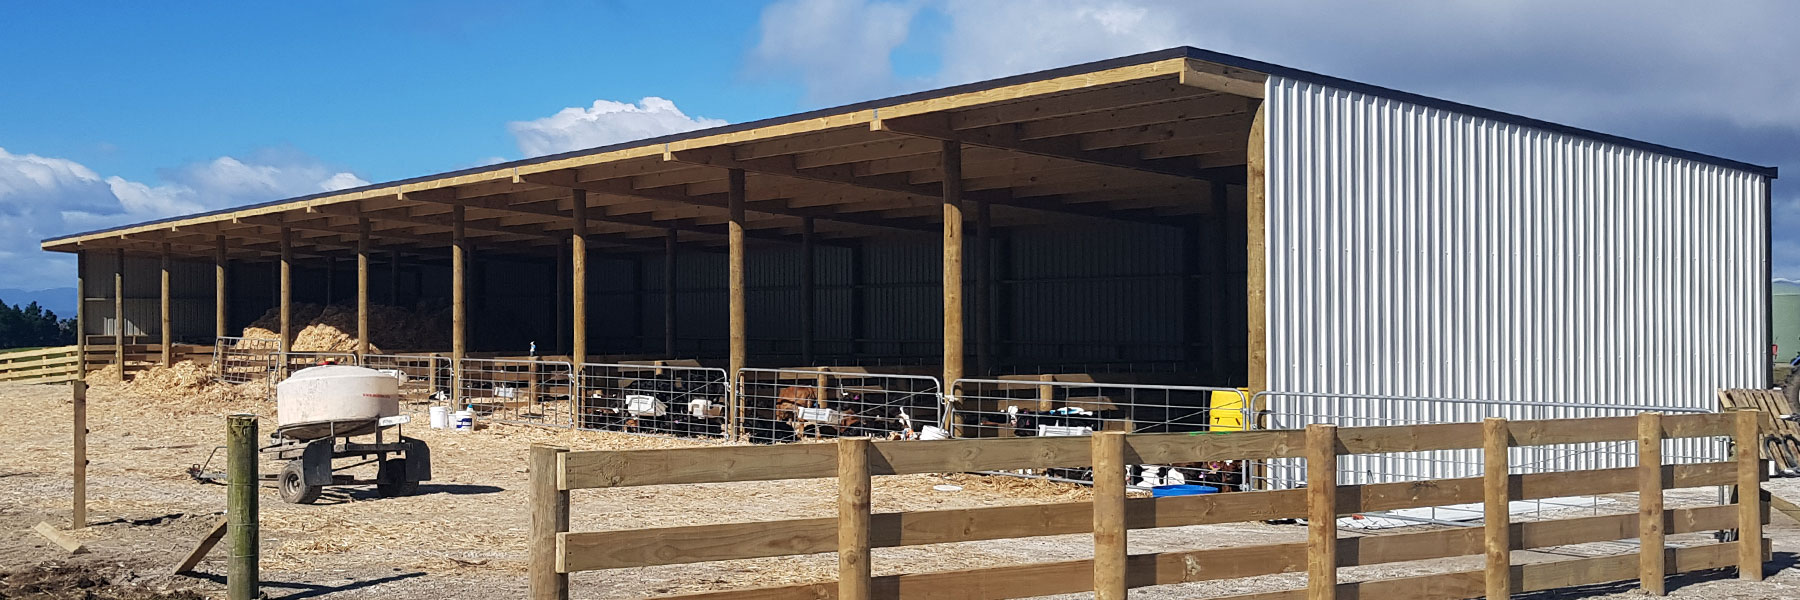 Dairy Sheds | Farm Sheds| CPS Services